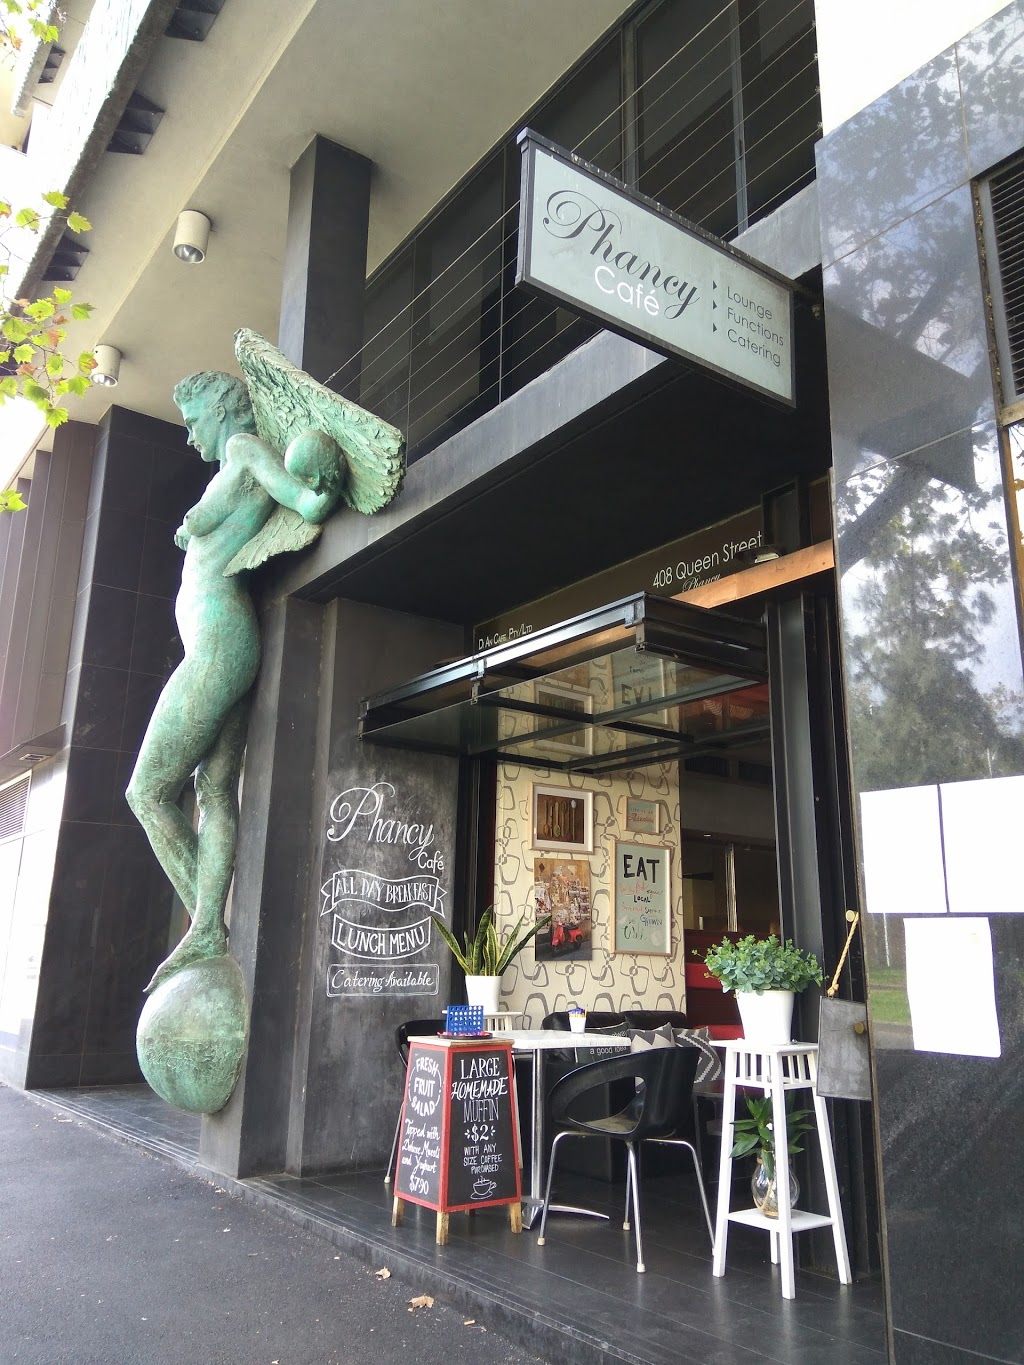 Phancy Cafe & Catering | cafe | 408 Queen St, Melbourne VIC 3000, Australia | 0396700884 OR +61 3 9670 0884